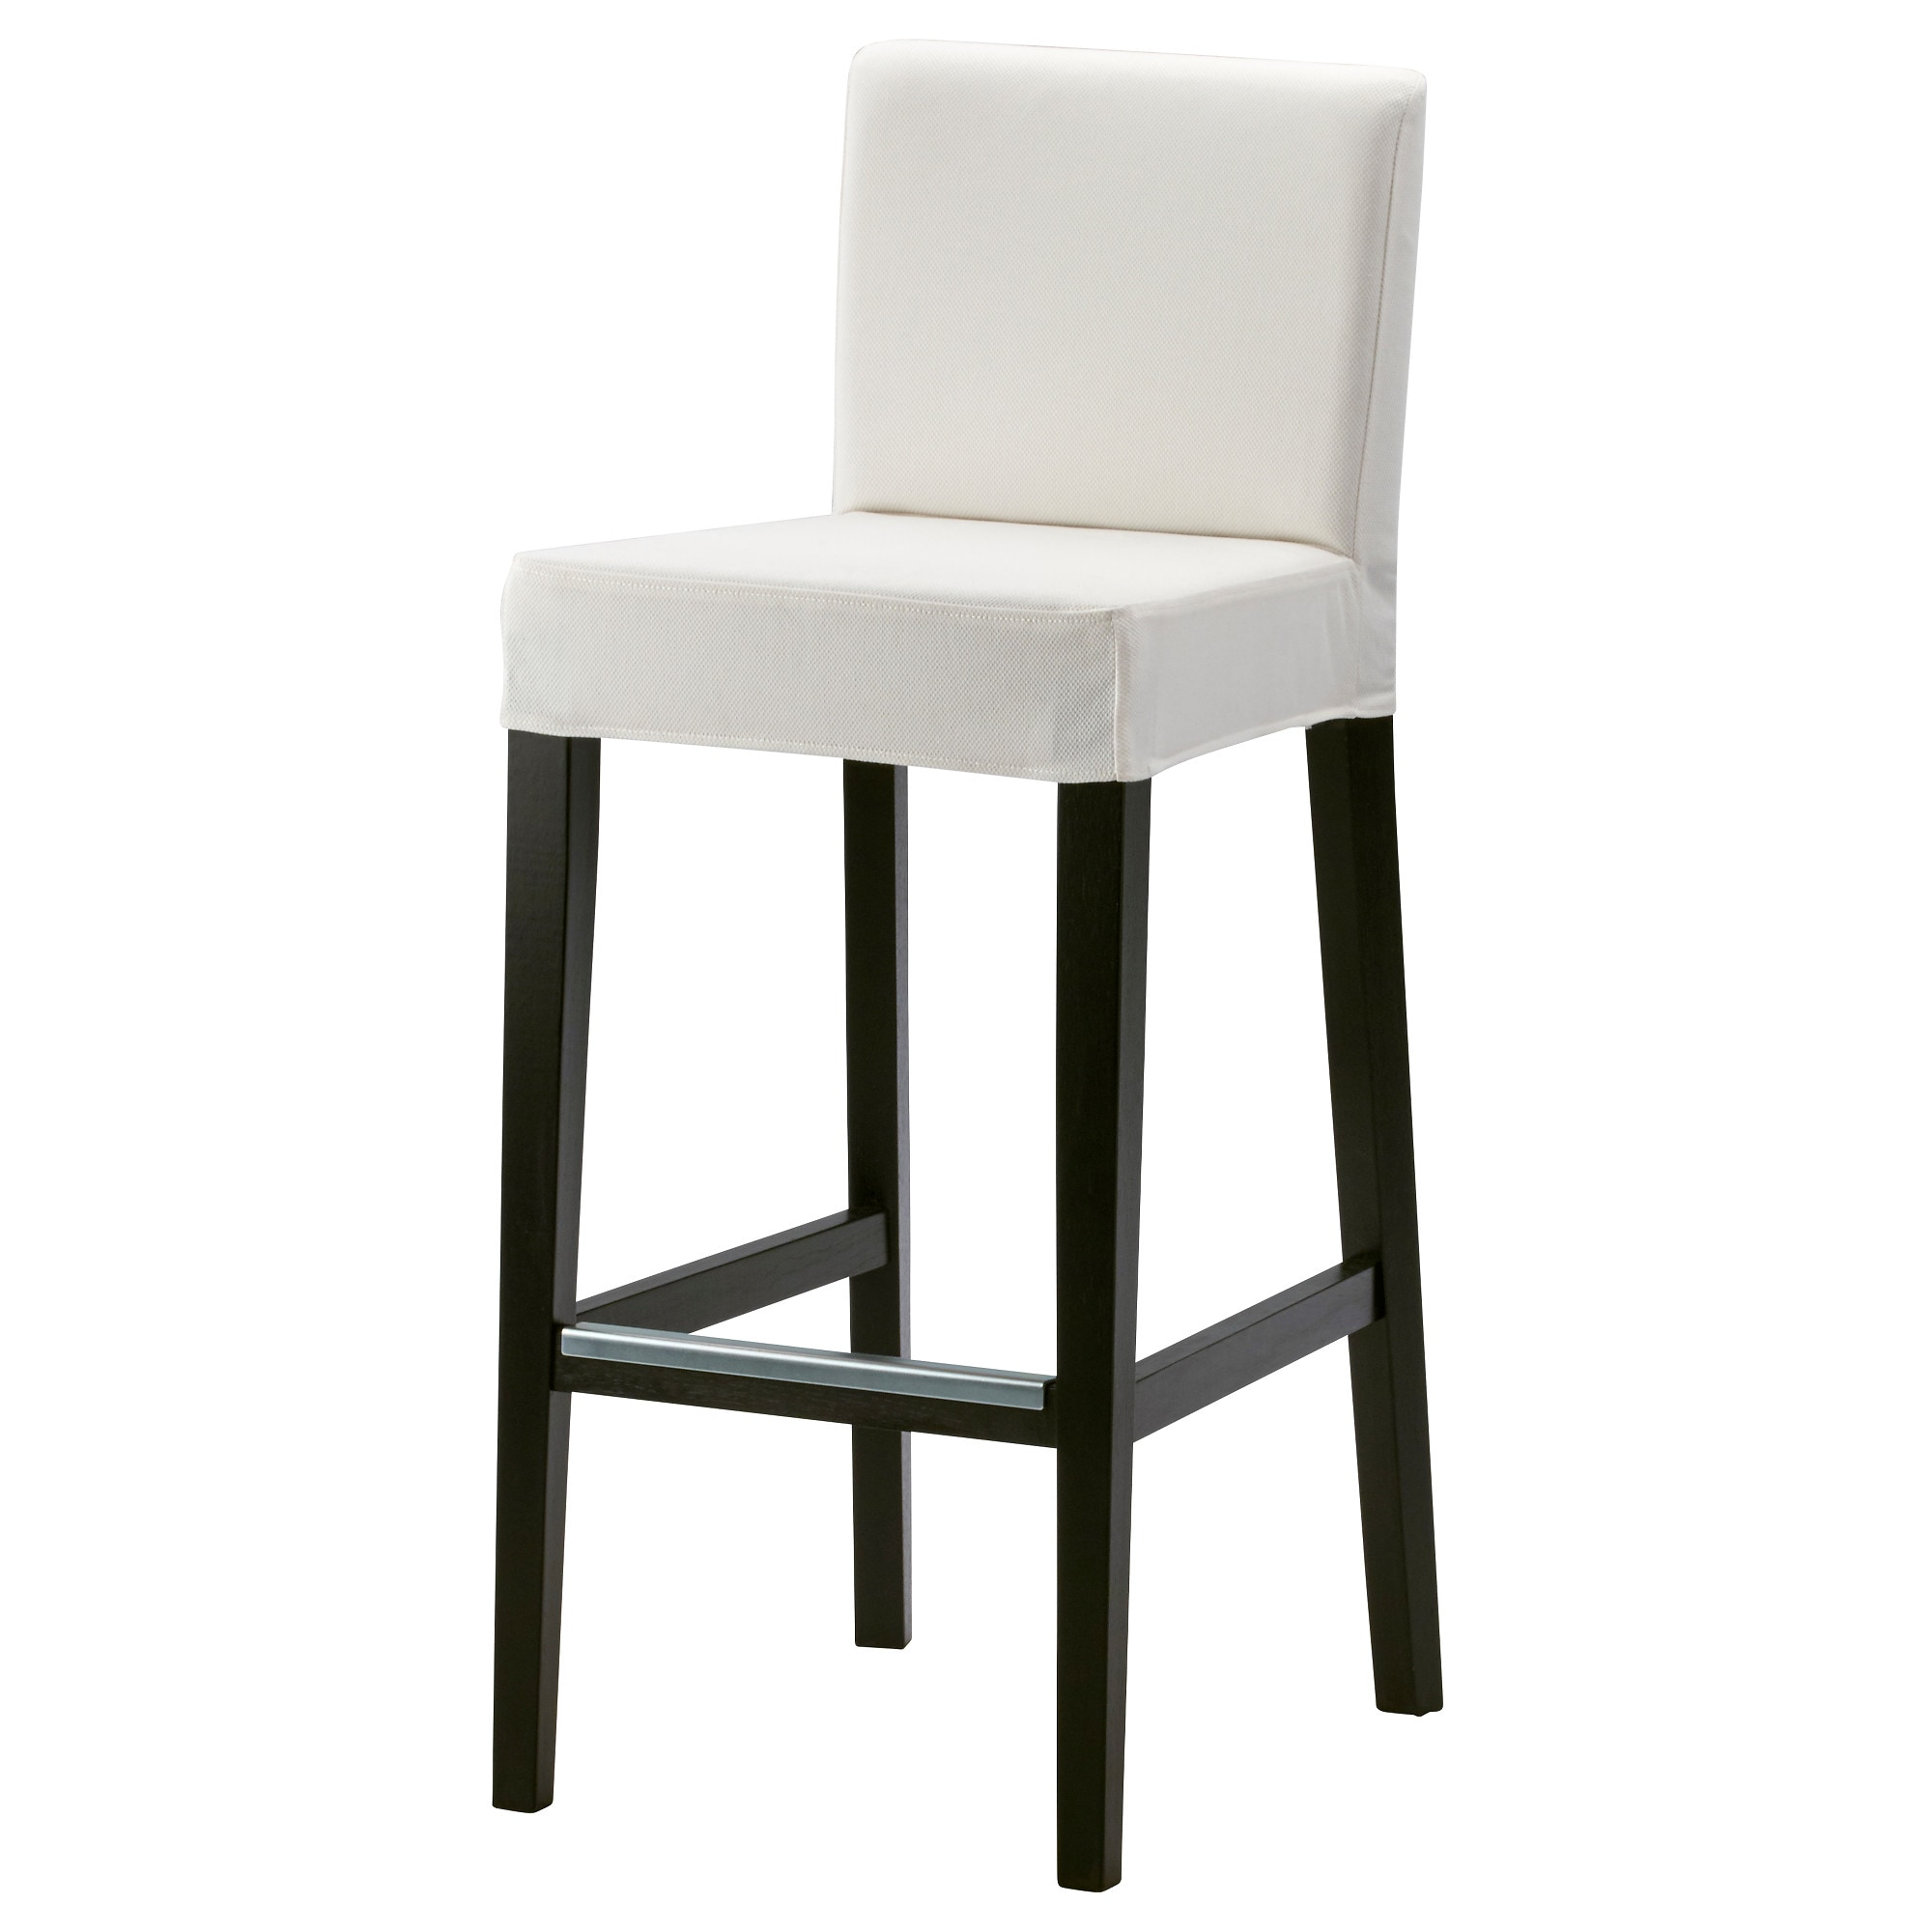 Henriksdal Bar Stool With Backrest Brown Black Gräsbo White Tested For 220